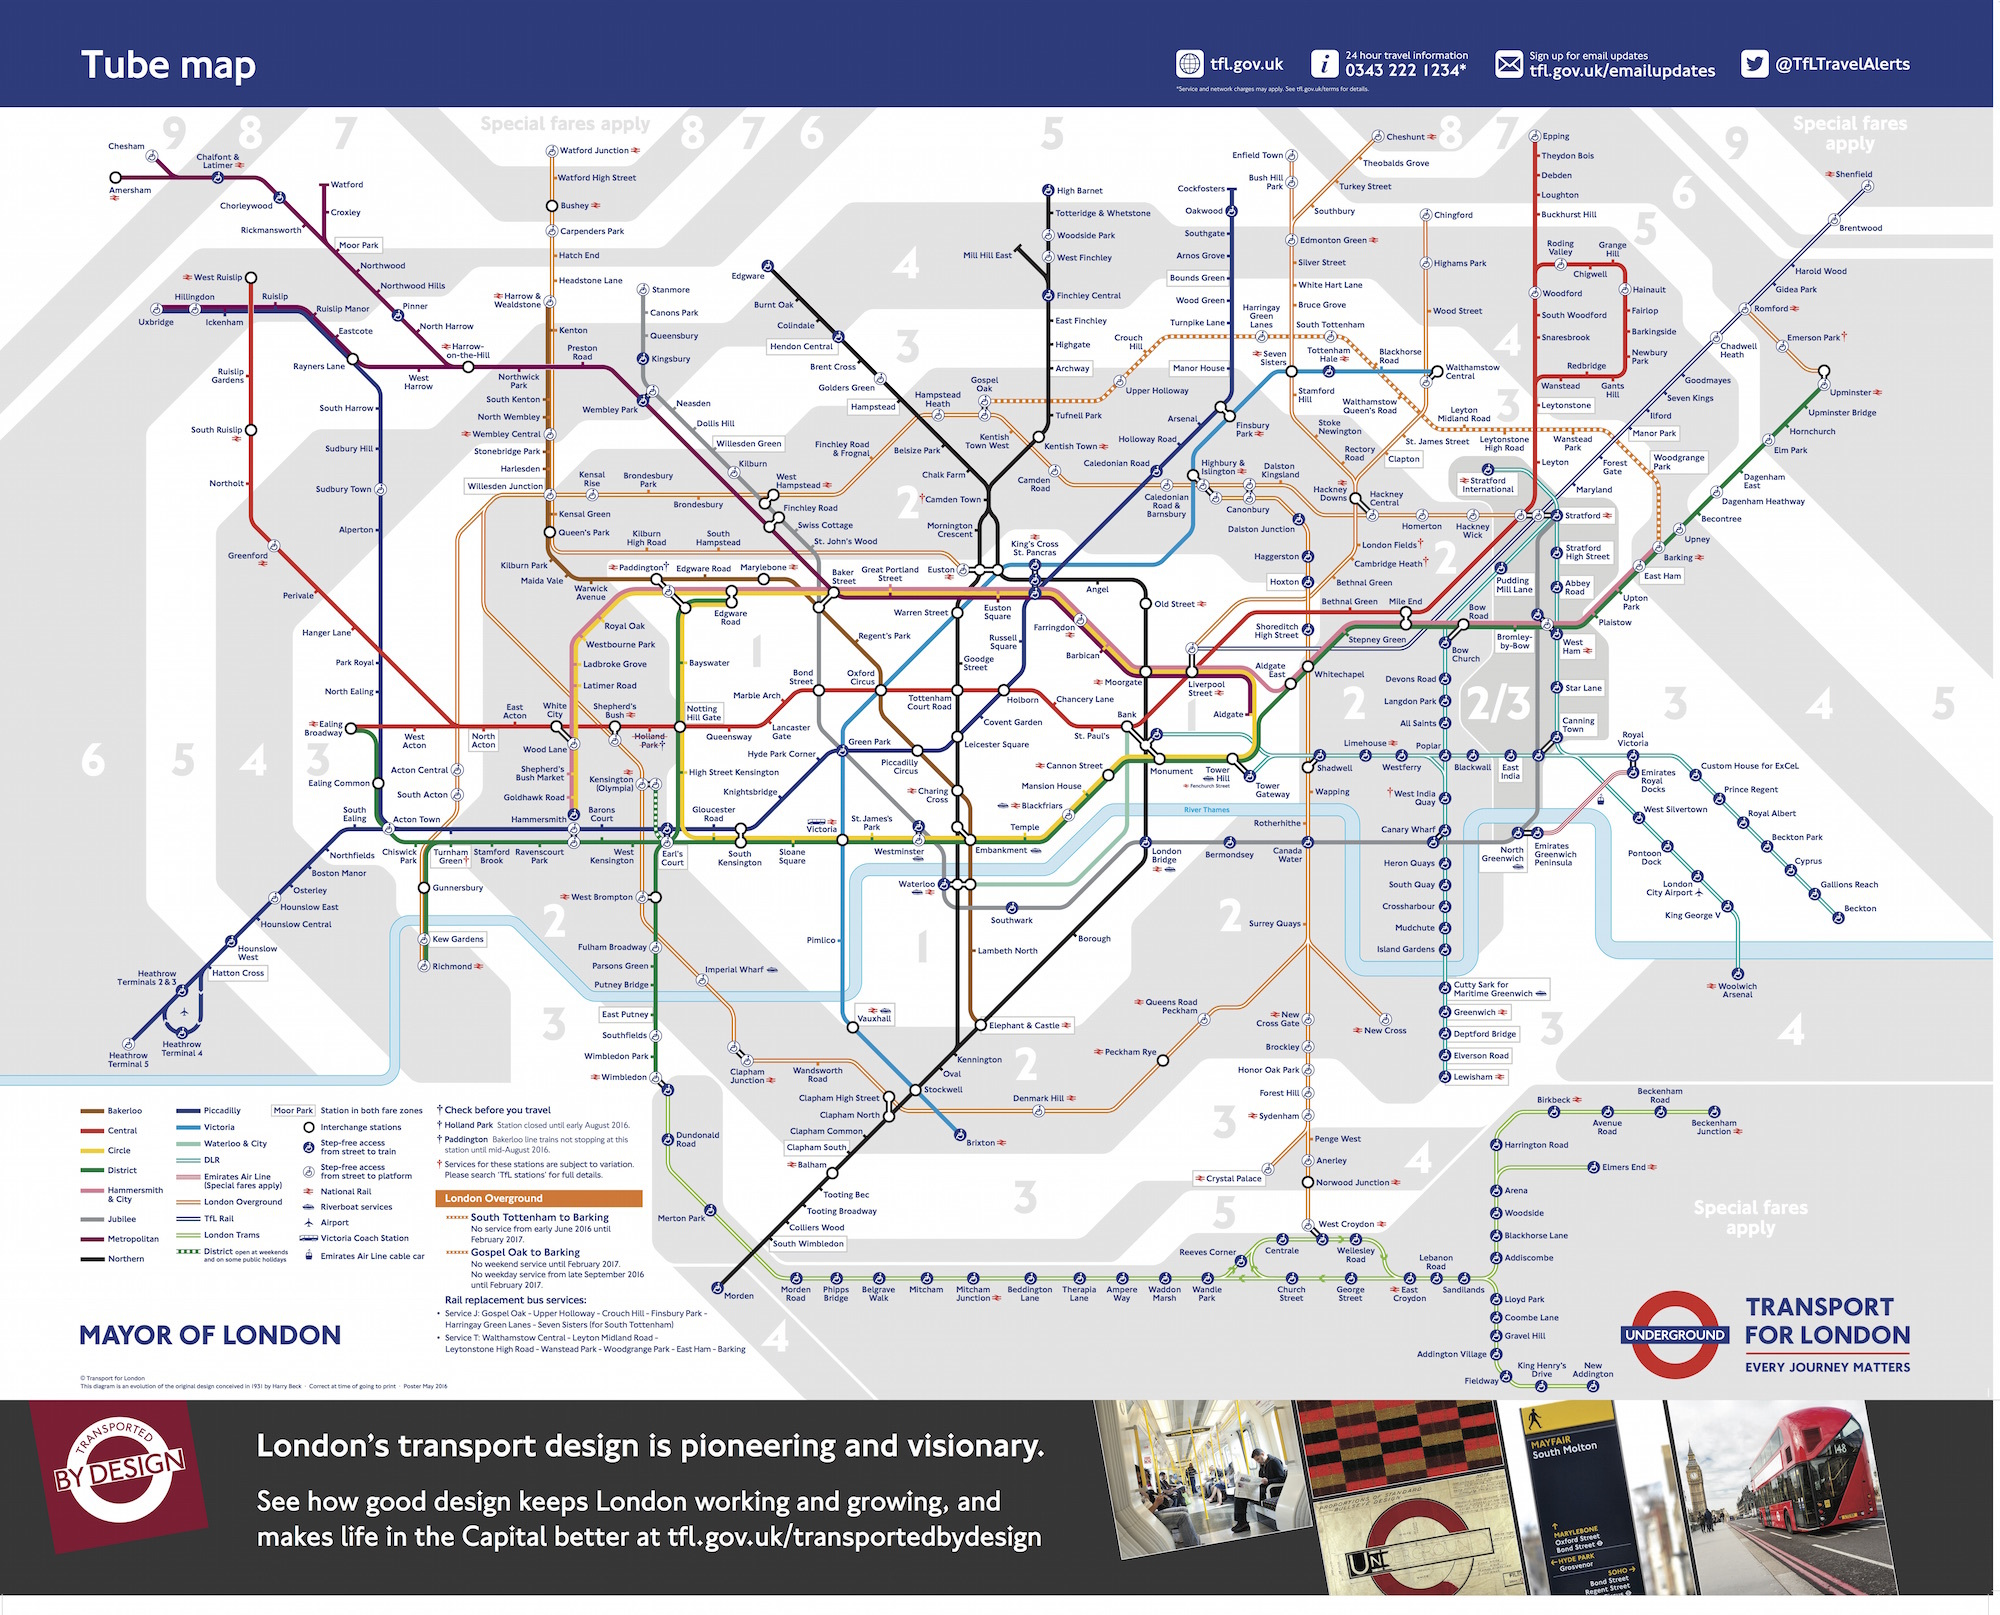 New Tube Map Exclusive: A First Look At The New 2016 Tube Map | Londonist